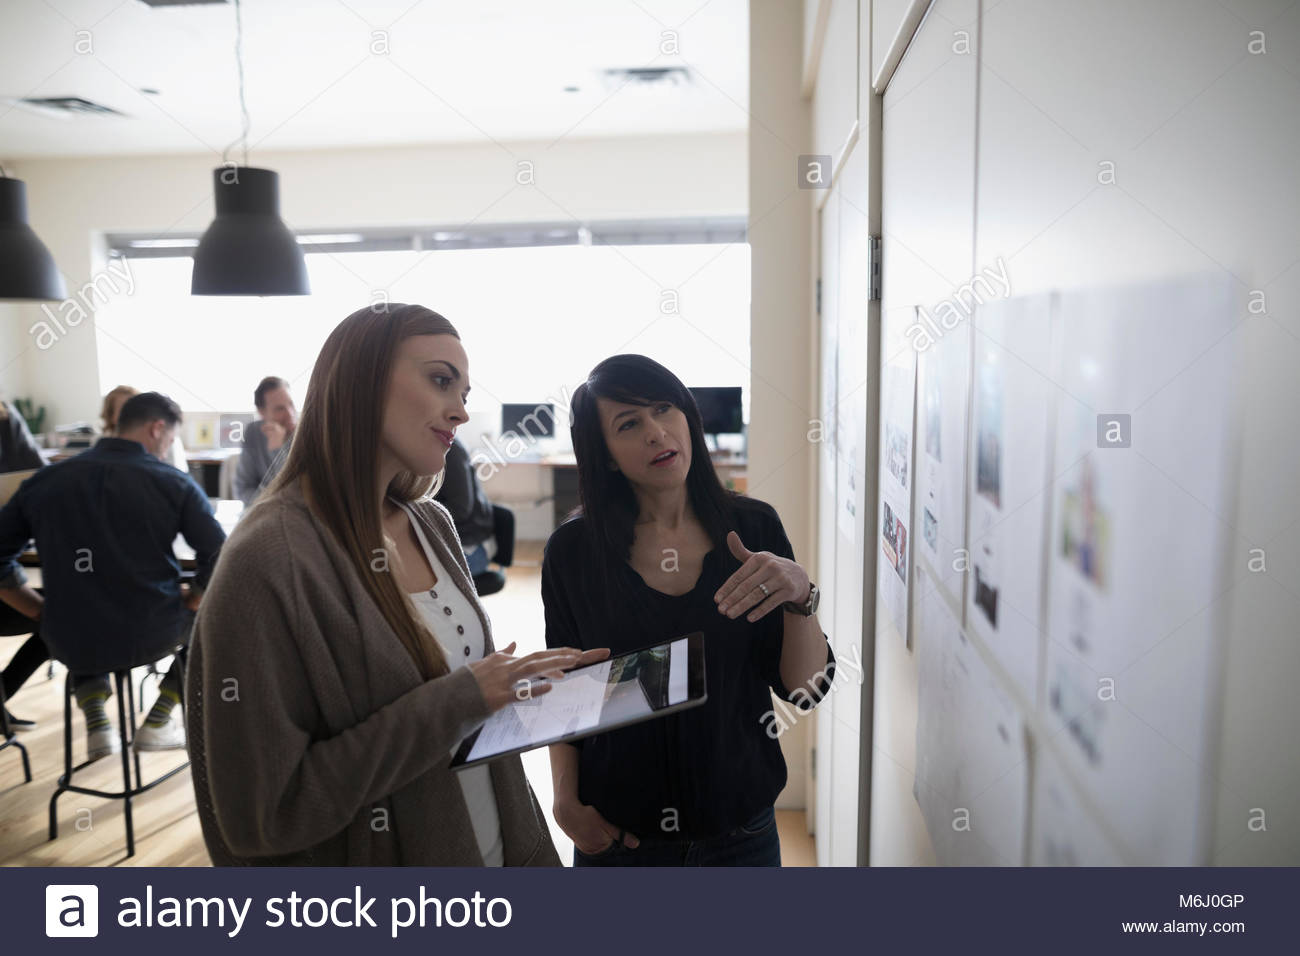 Female photo editors with digital tablet discussing photo proofs hanging on office wall - Stock Image